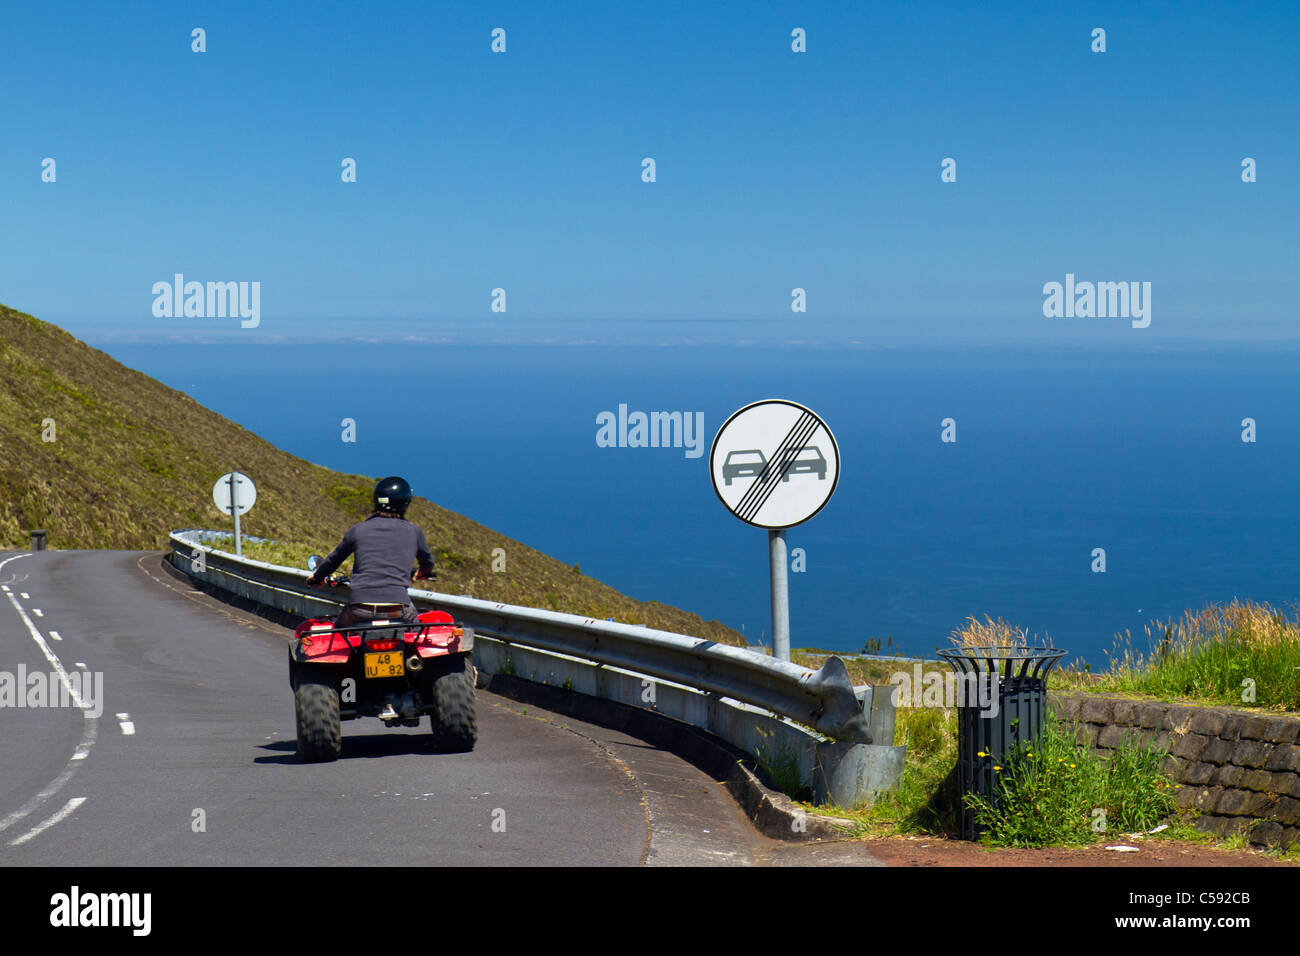 Man in ATV driving past Lagoa do Fogo - the Fire Lake, a famous crater lake in São Miguel island, Azores. - Stock Image